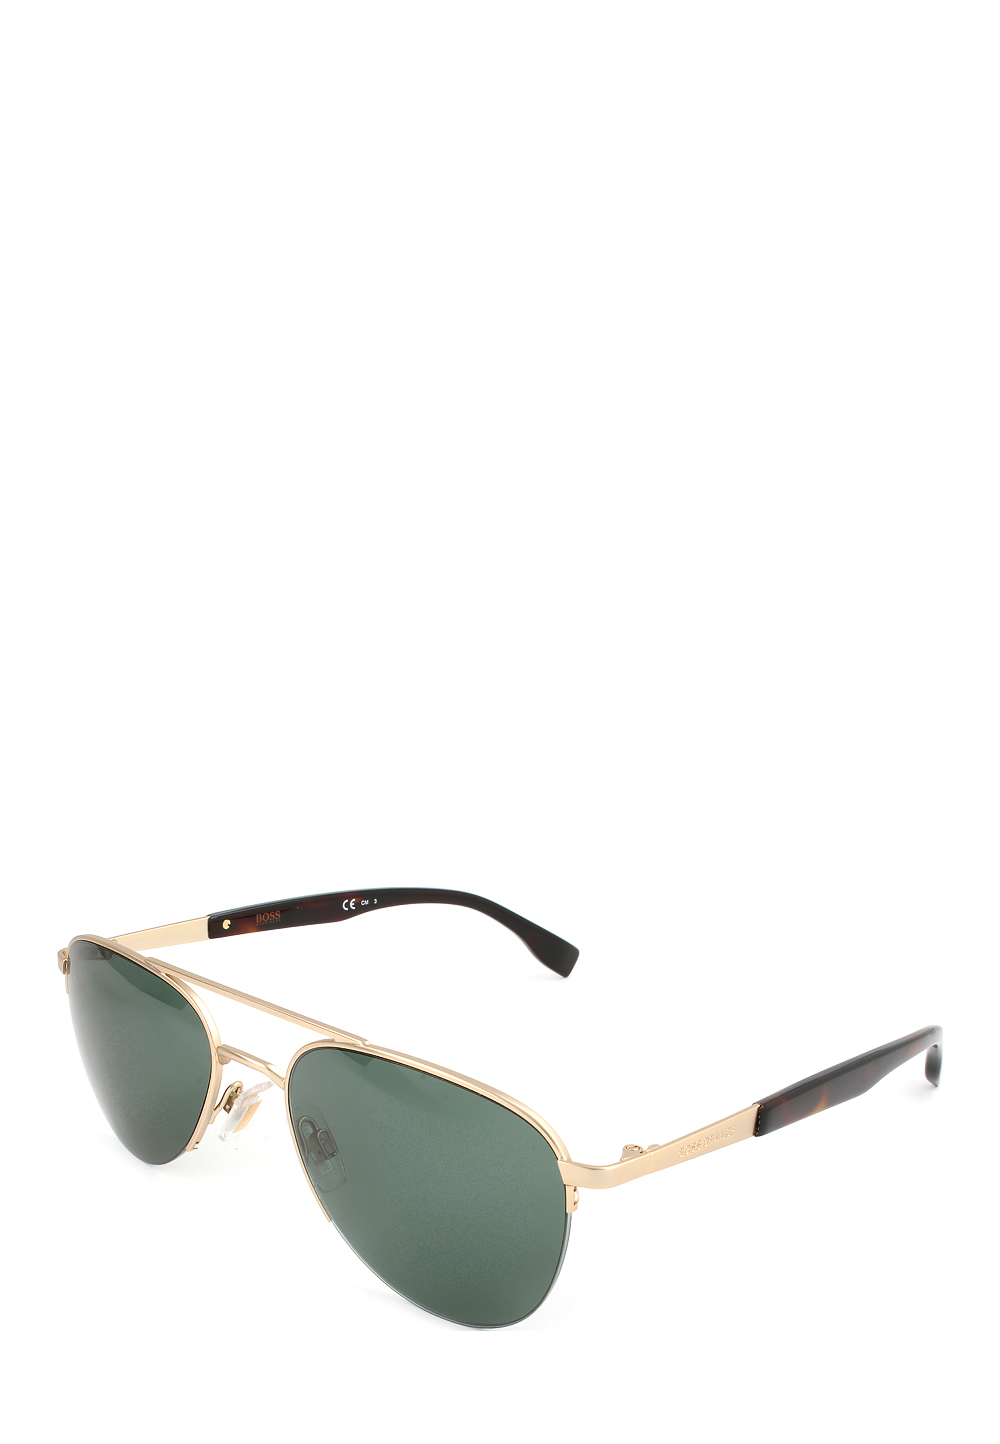 Sonnenbrille, UV 400, golden